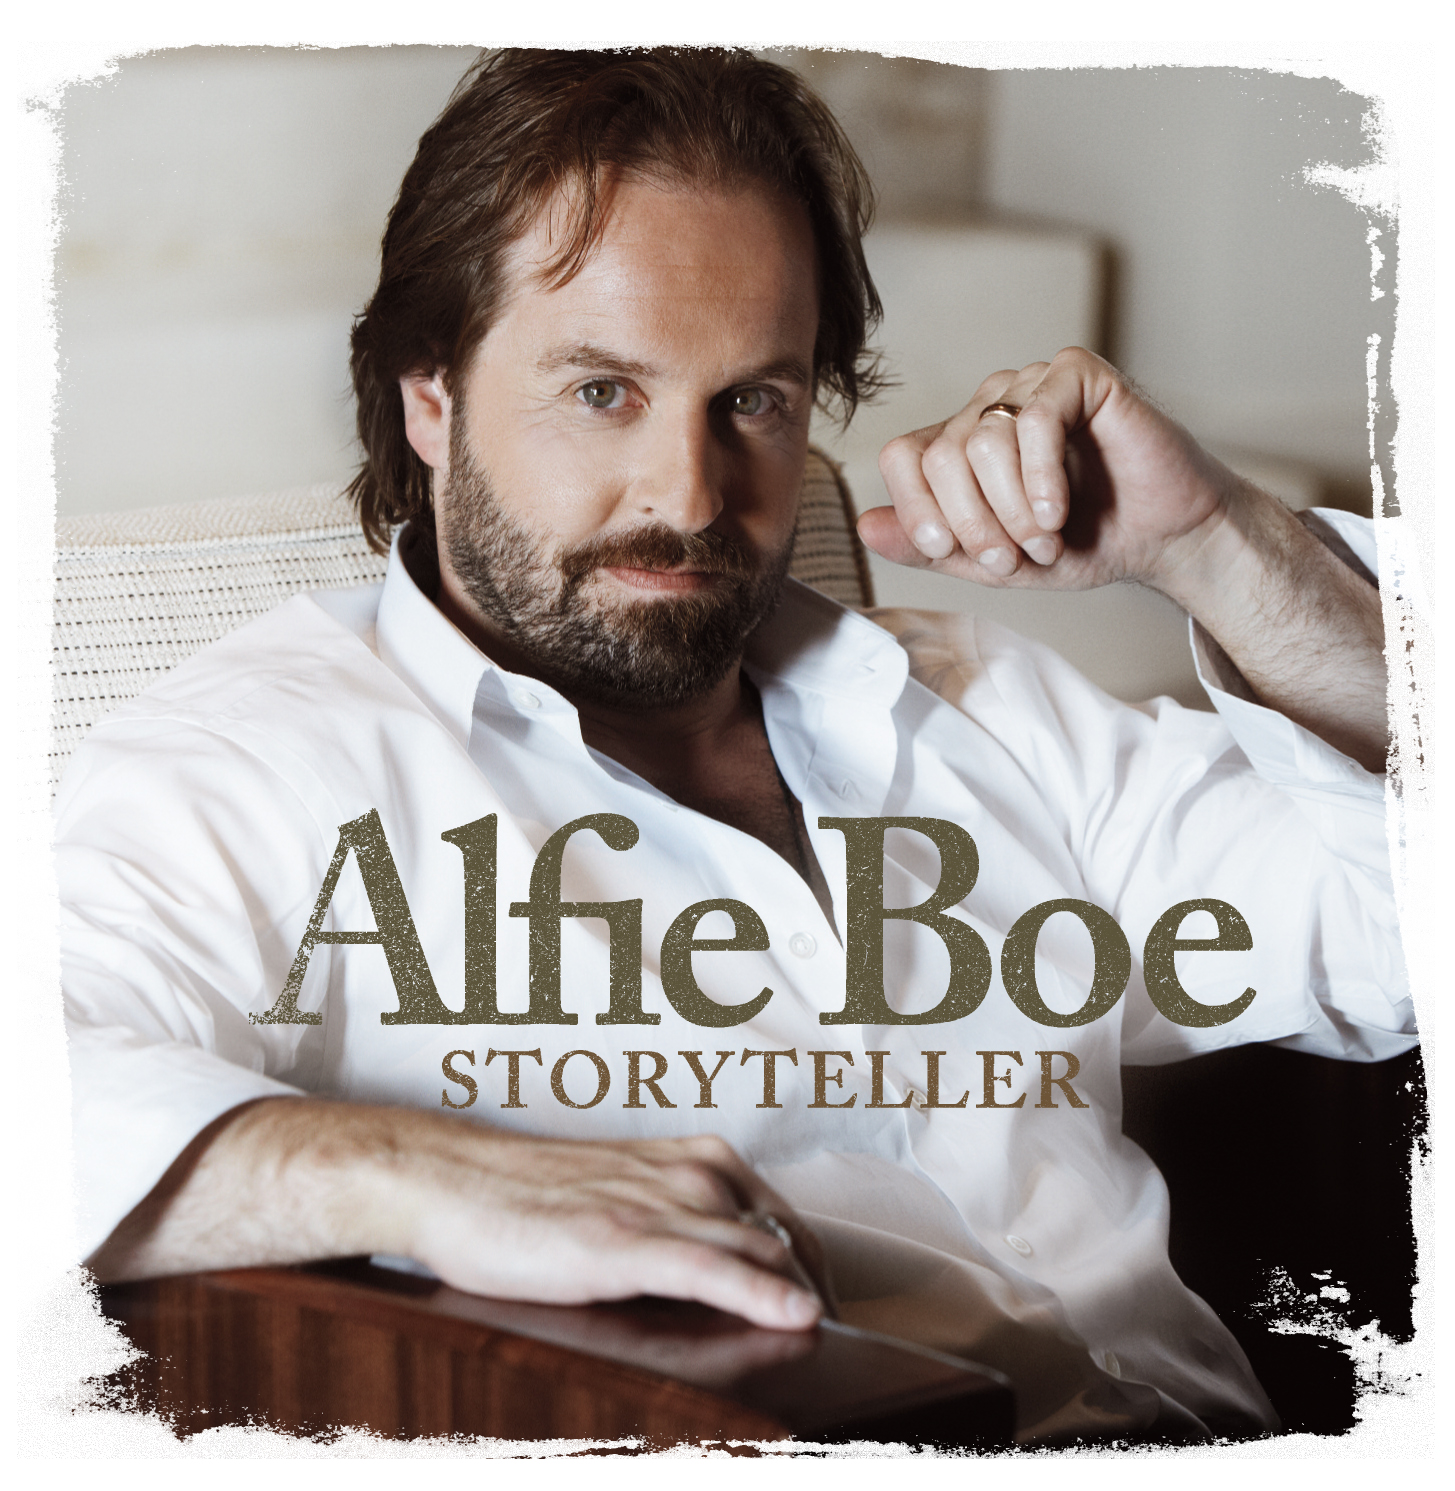 Storyteller Alfie Boe Official Website